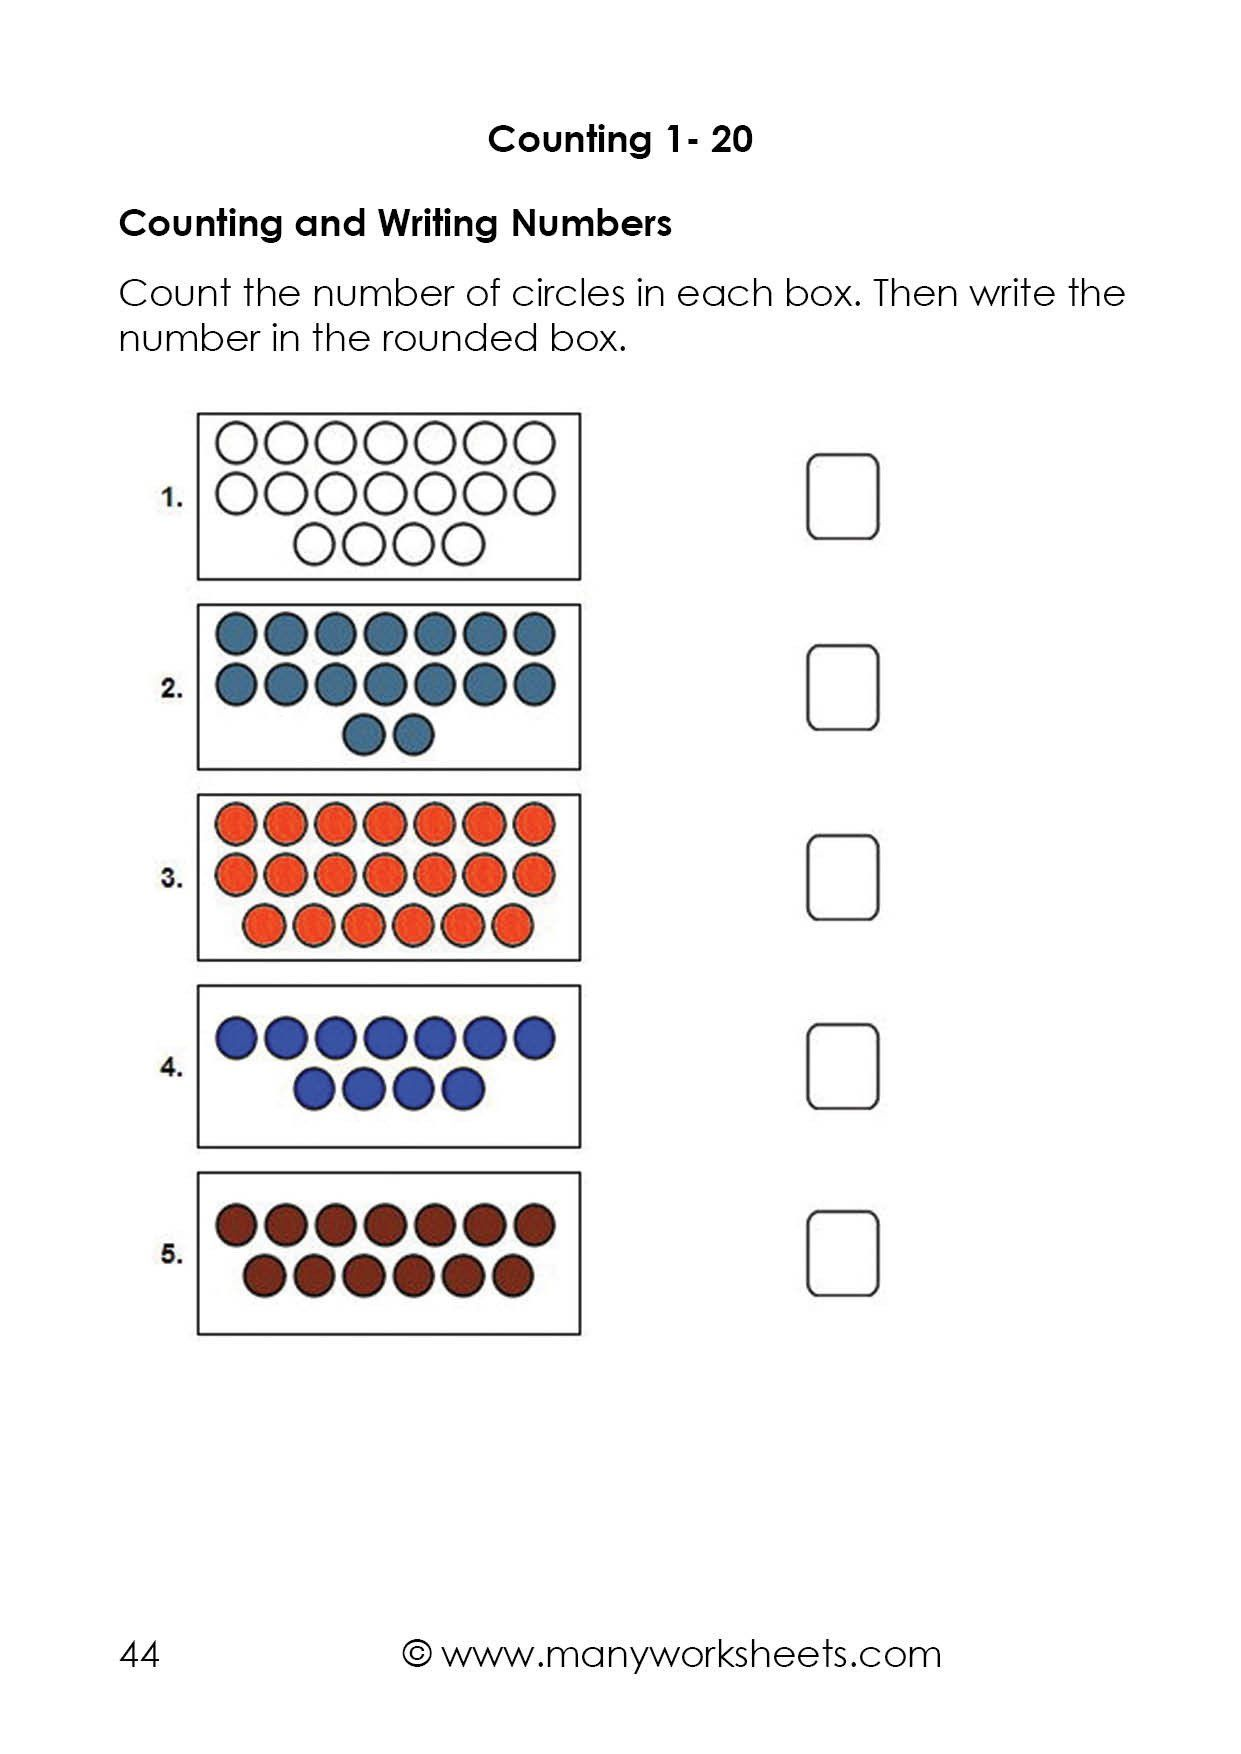 Writing Number Worksheets 1 20 Counting Dots To 20 And